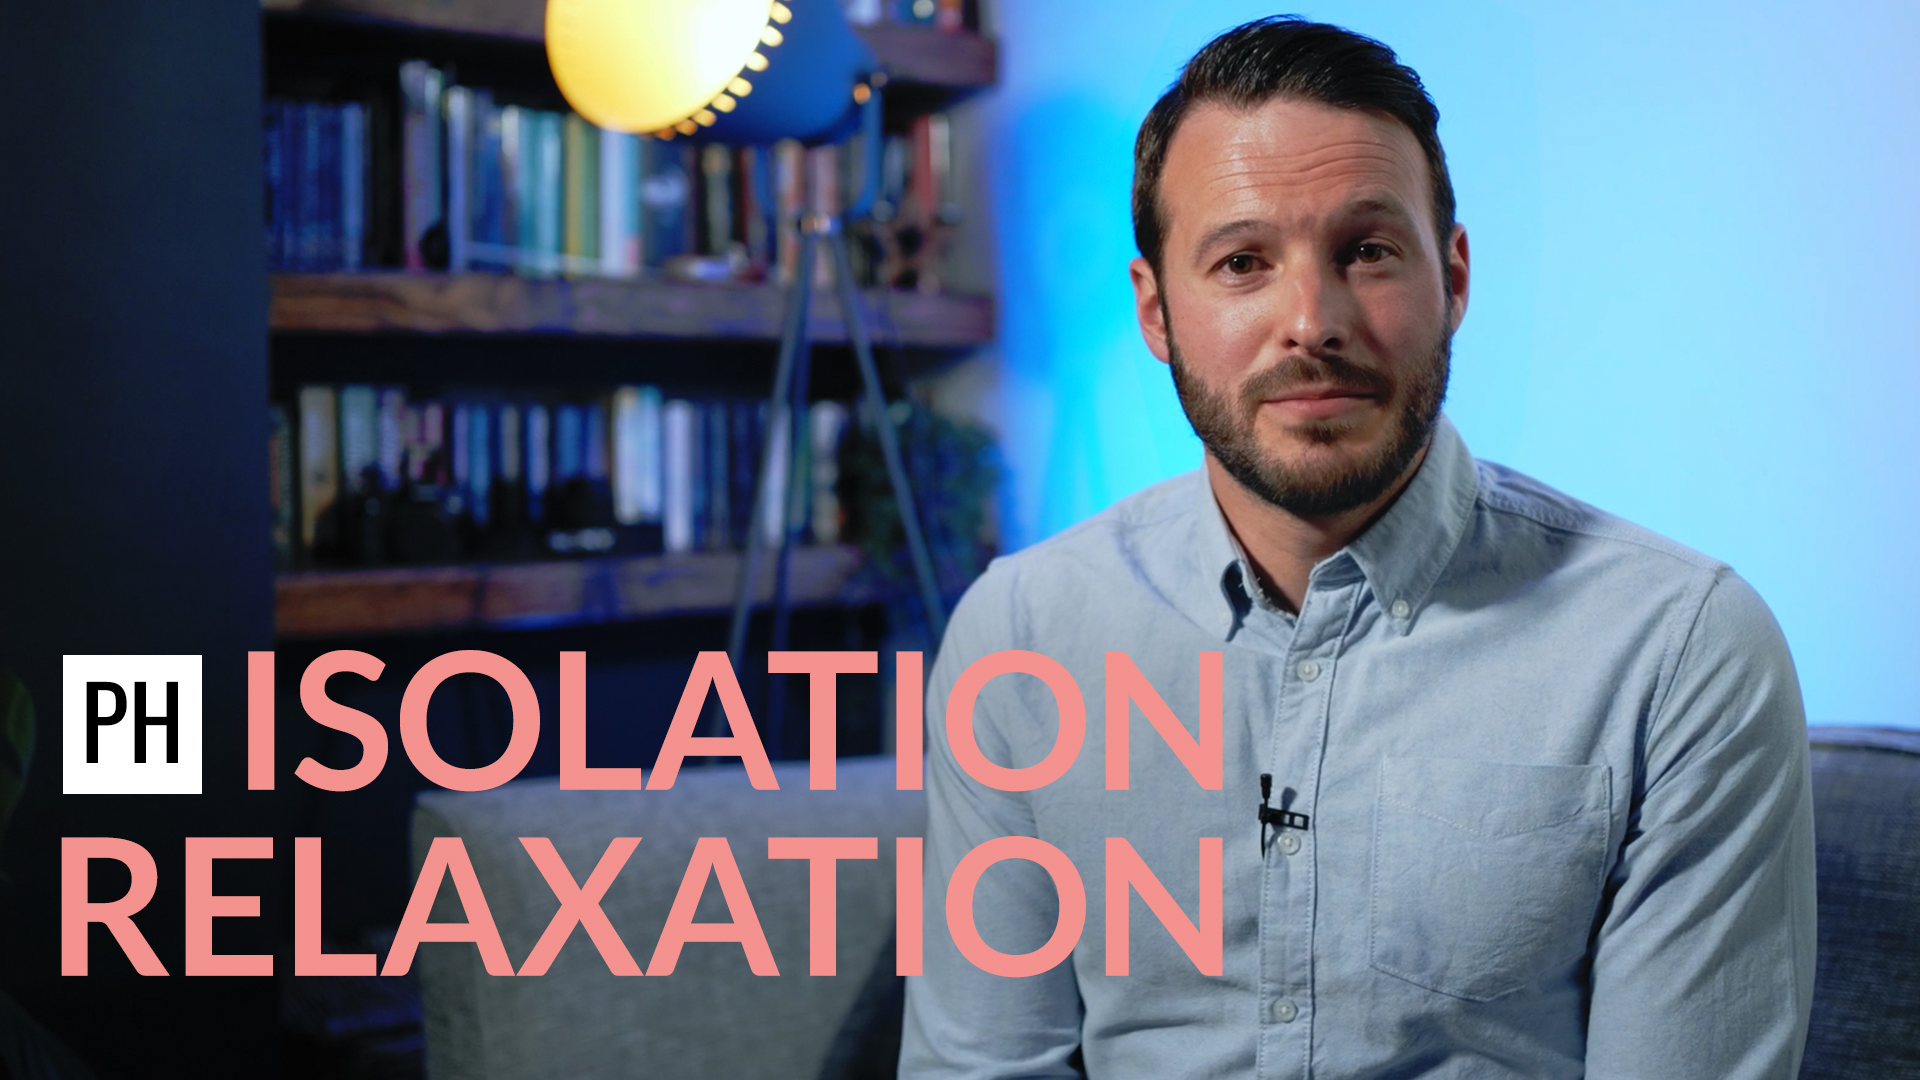 Isolation Relaxation - Day Two is my top 7 tips to help you relax